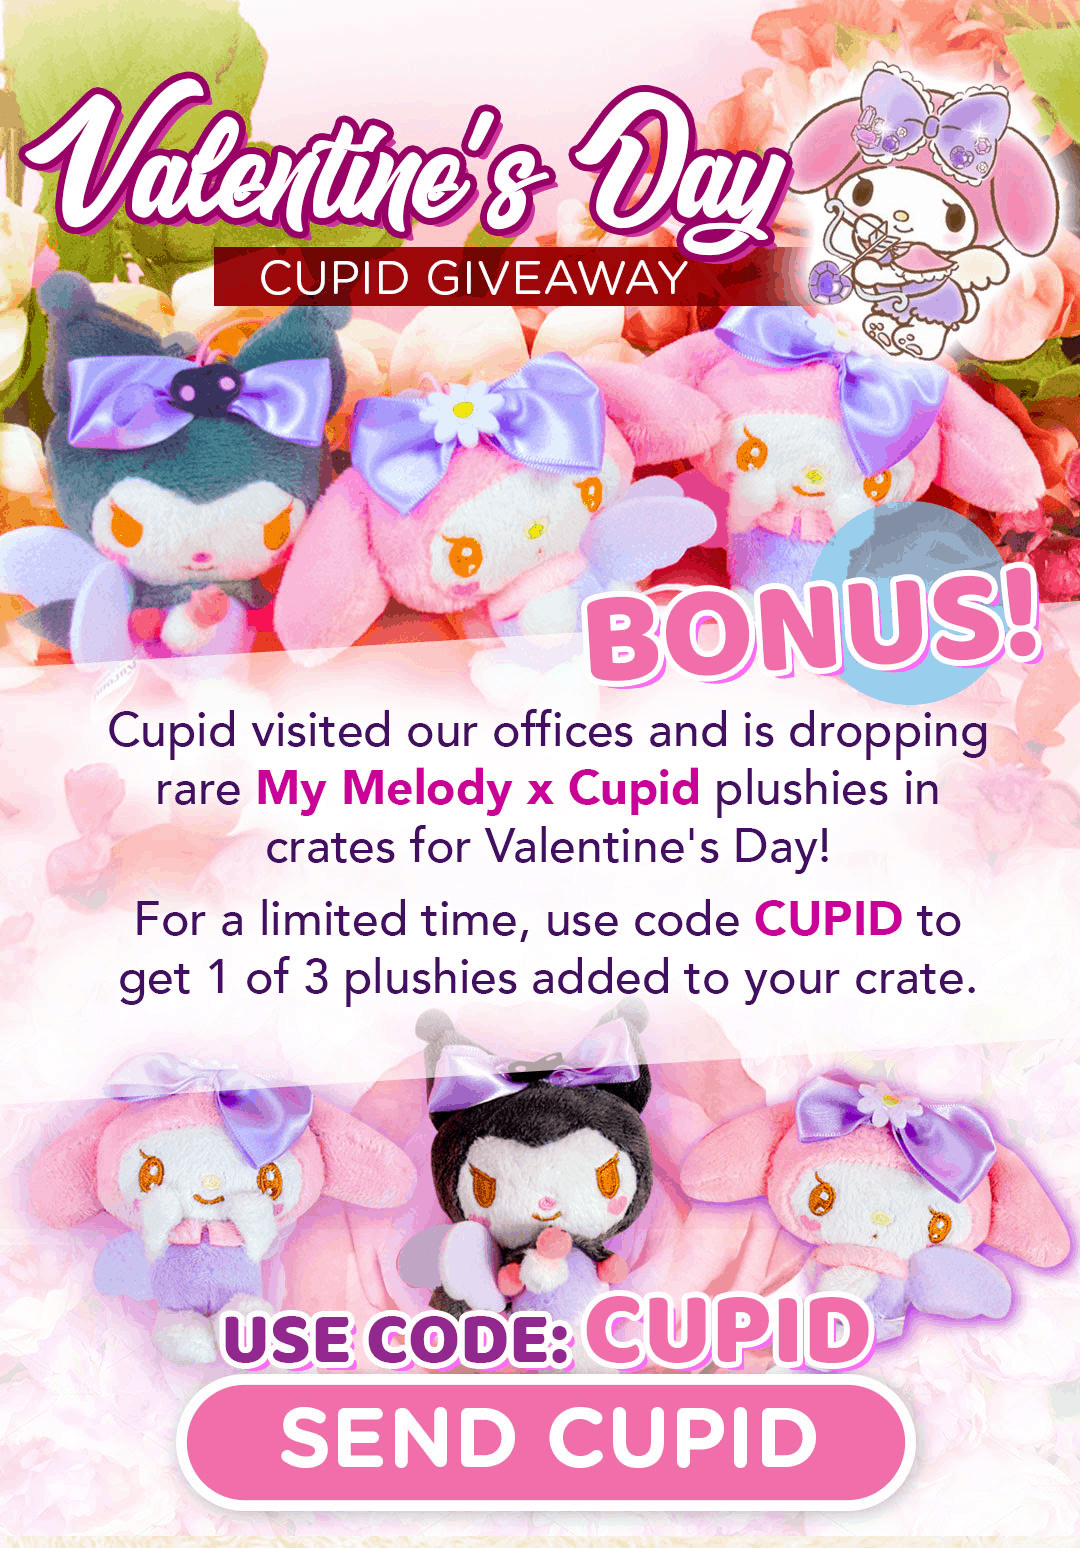 Doki Doki Coupon: Get Bonus My Melody X Cupid With Your First Crate!